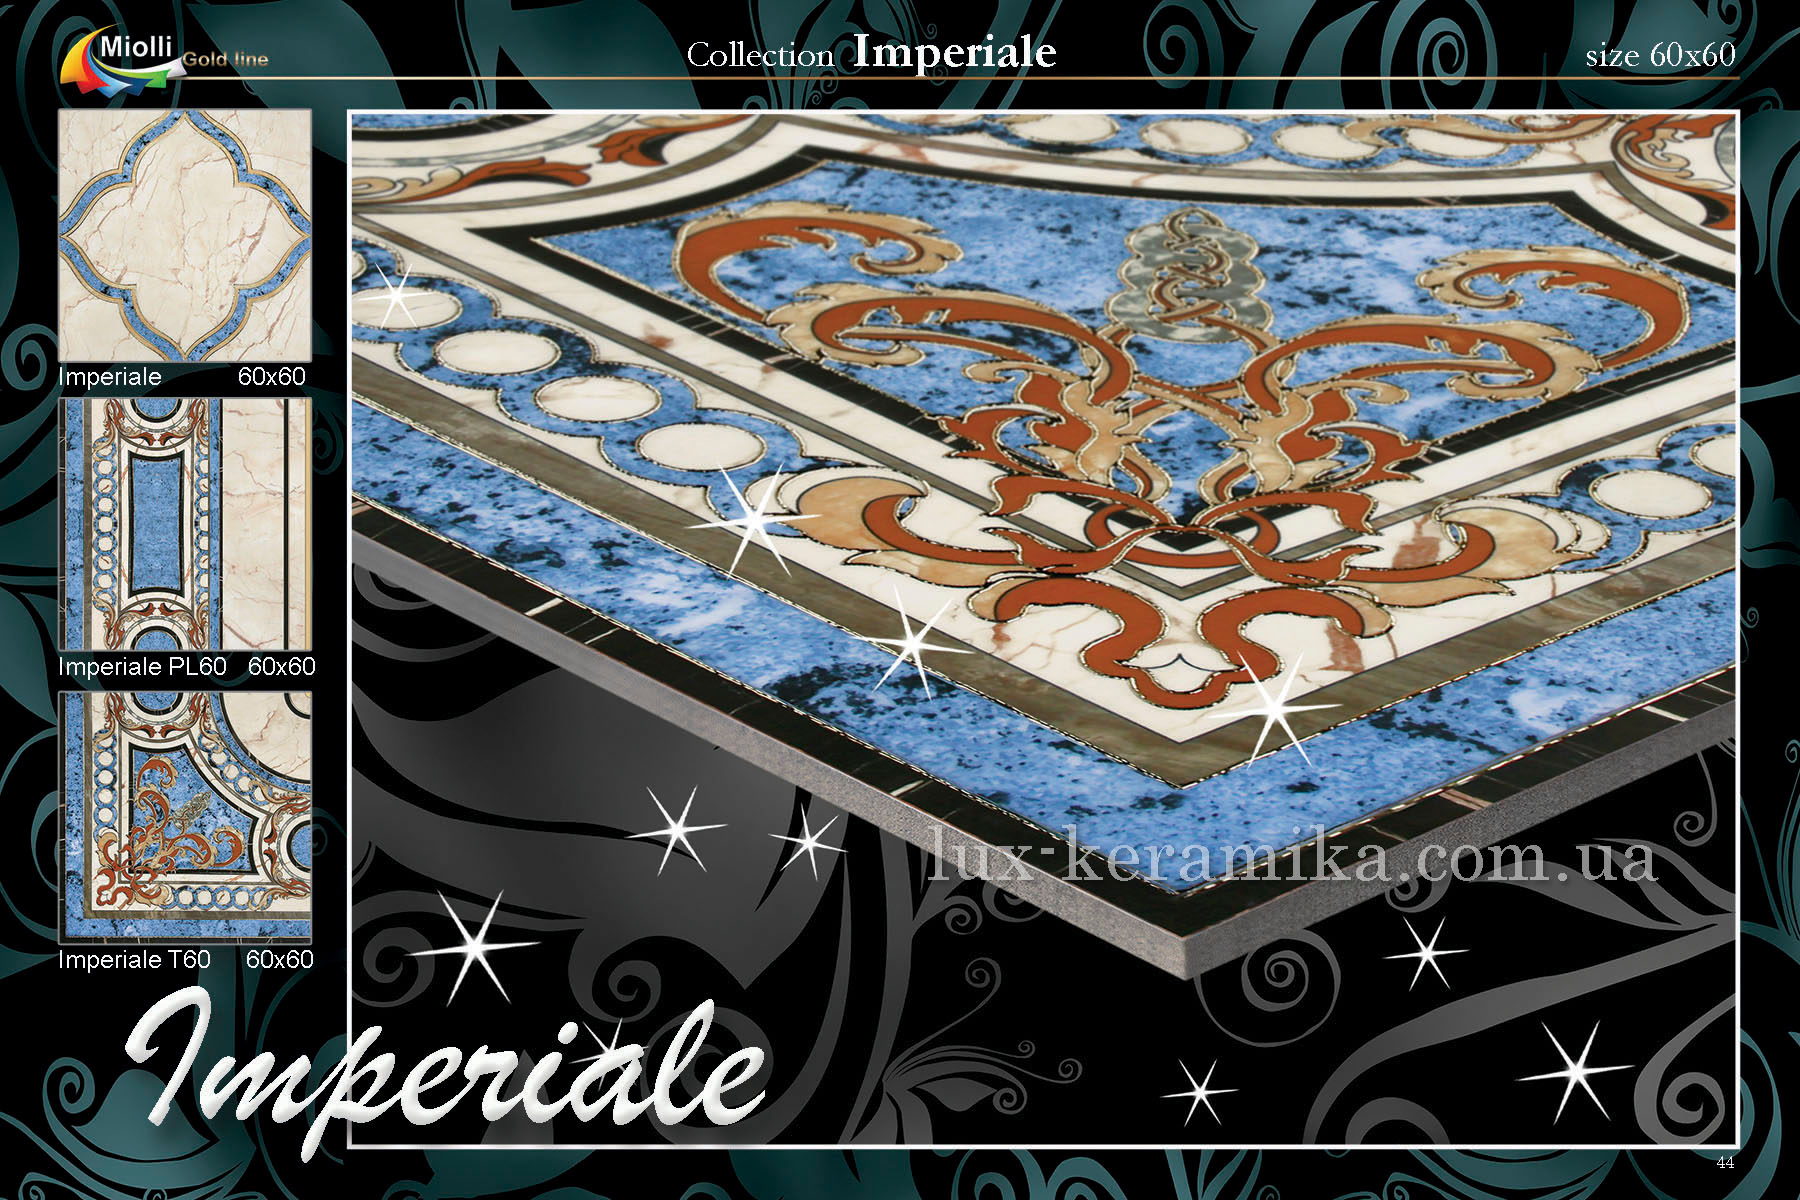 1_110-Imperiale-1